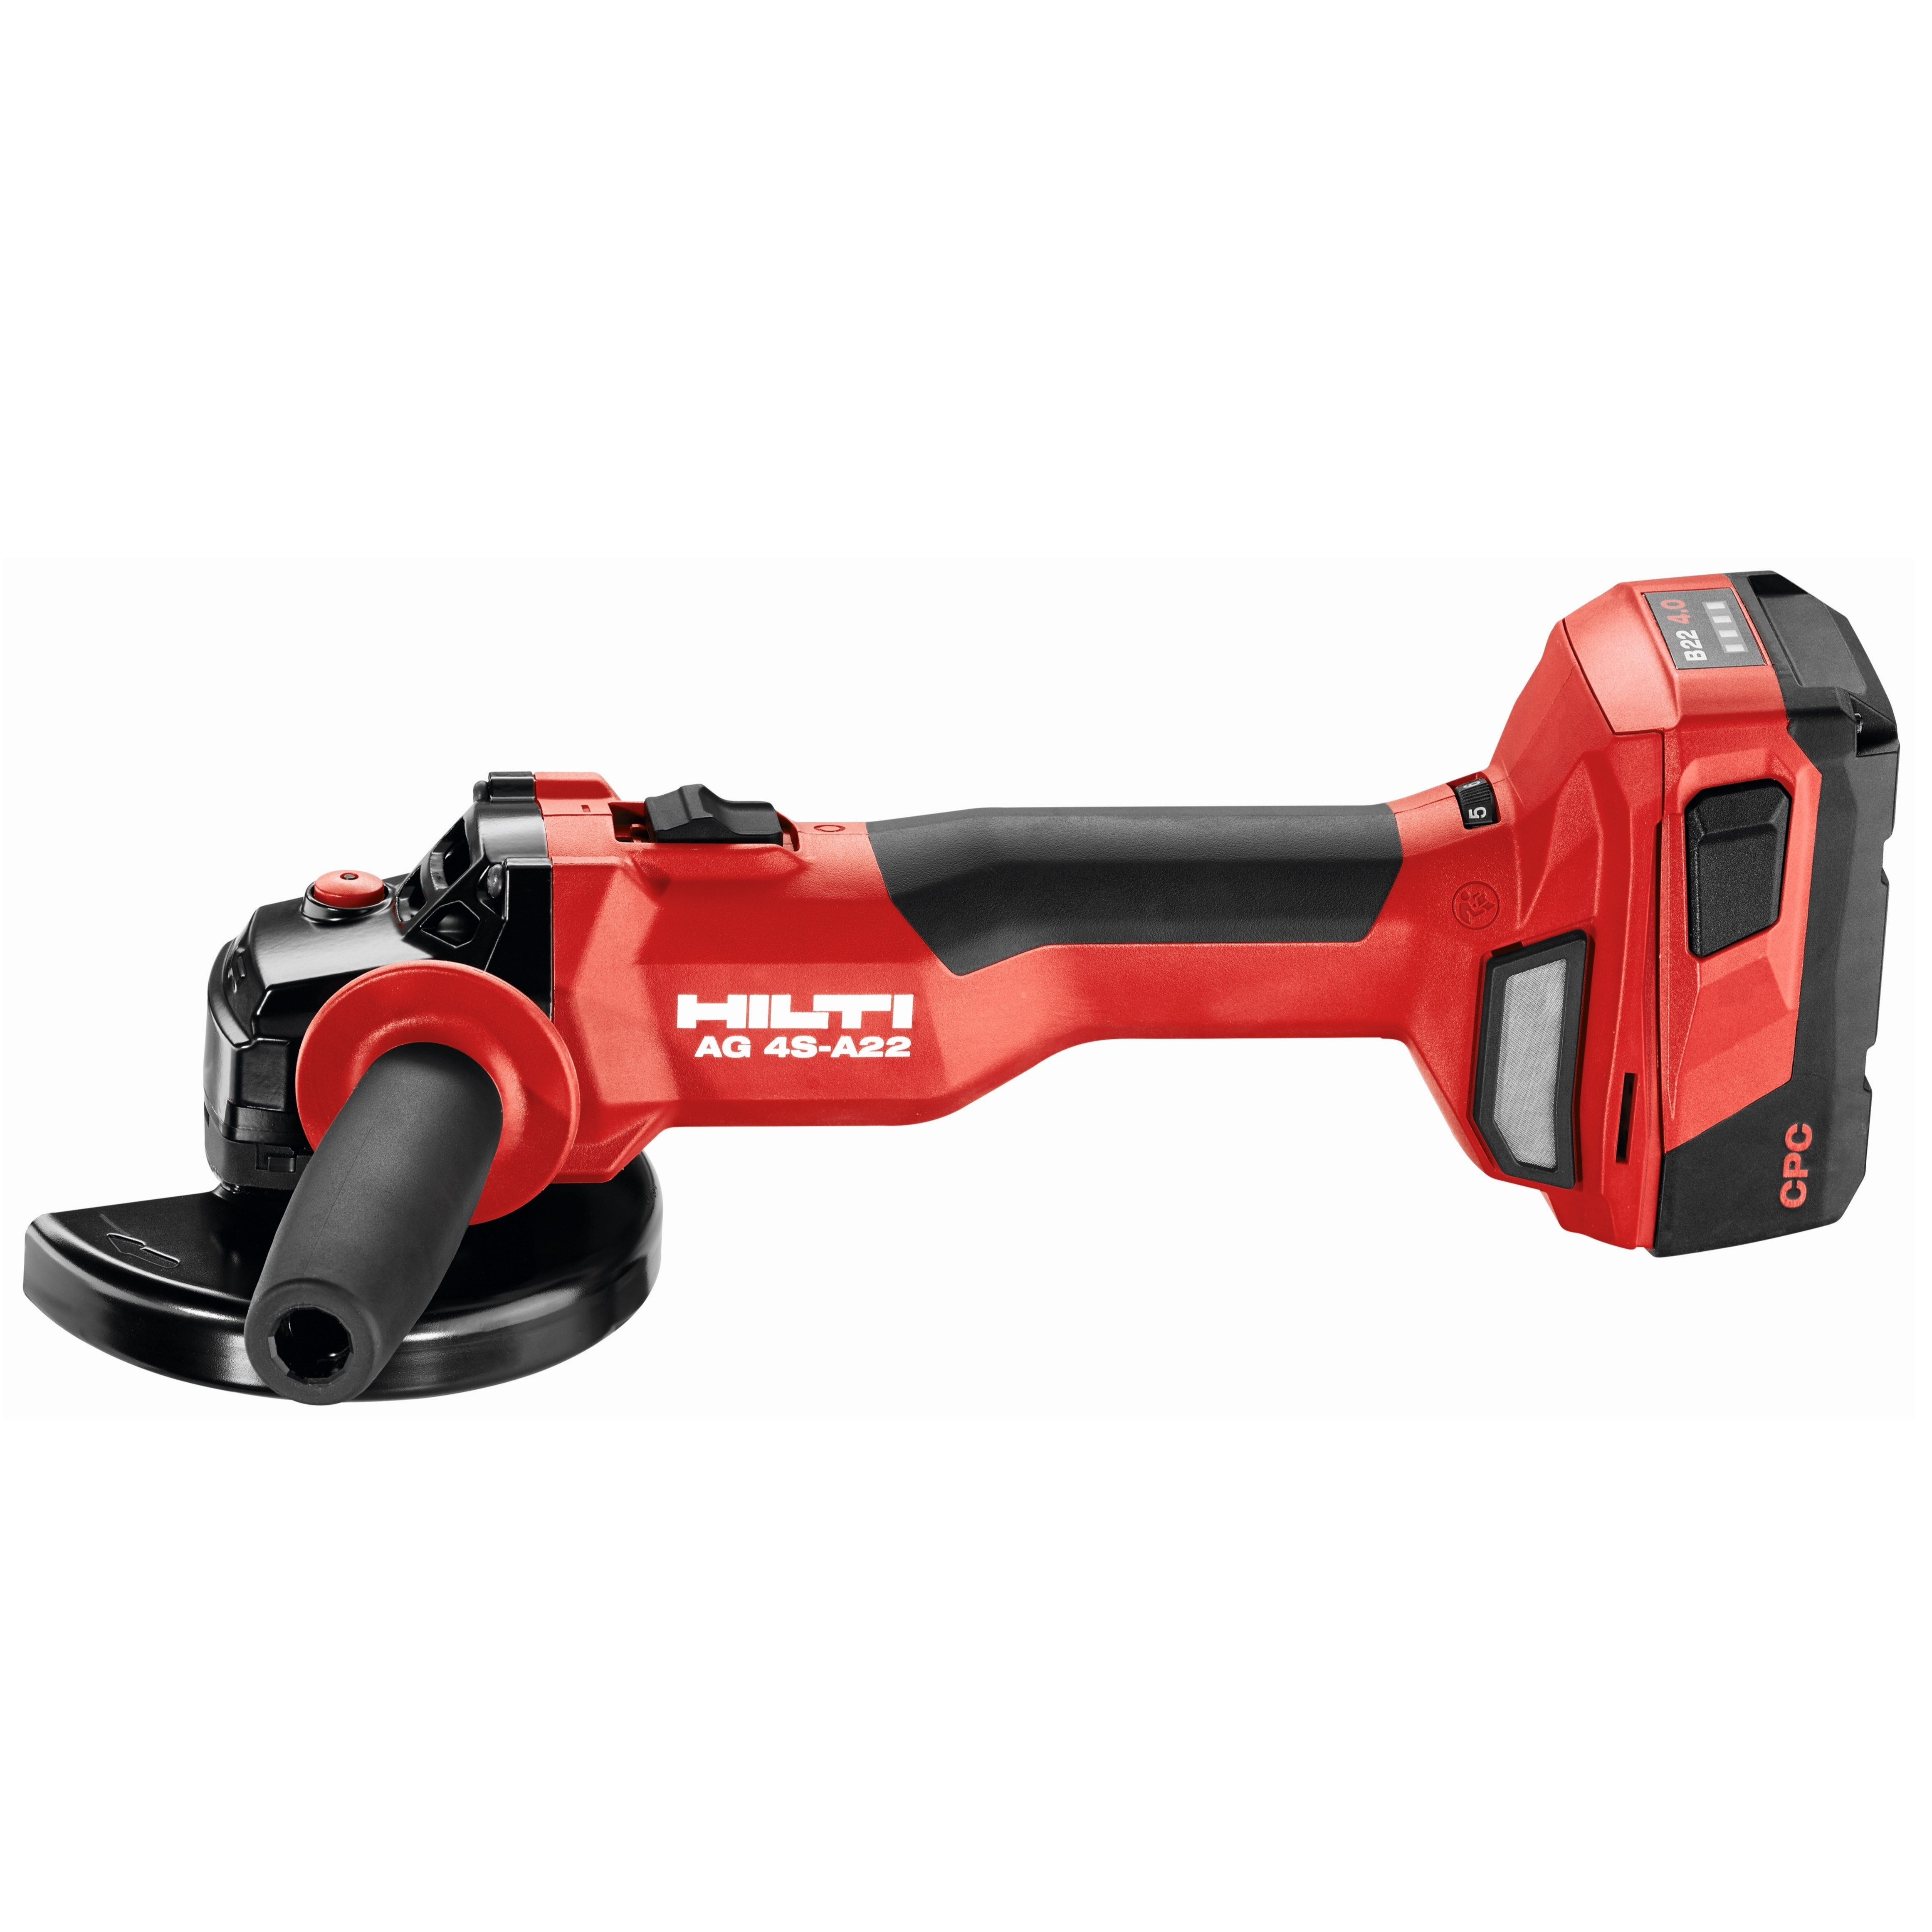 AG 4S-A22 cordless angle grinder